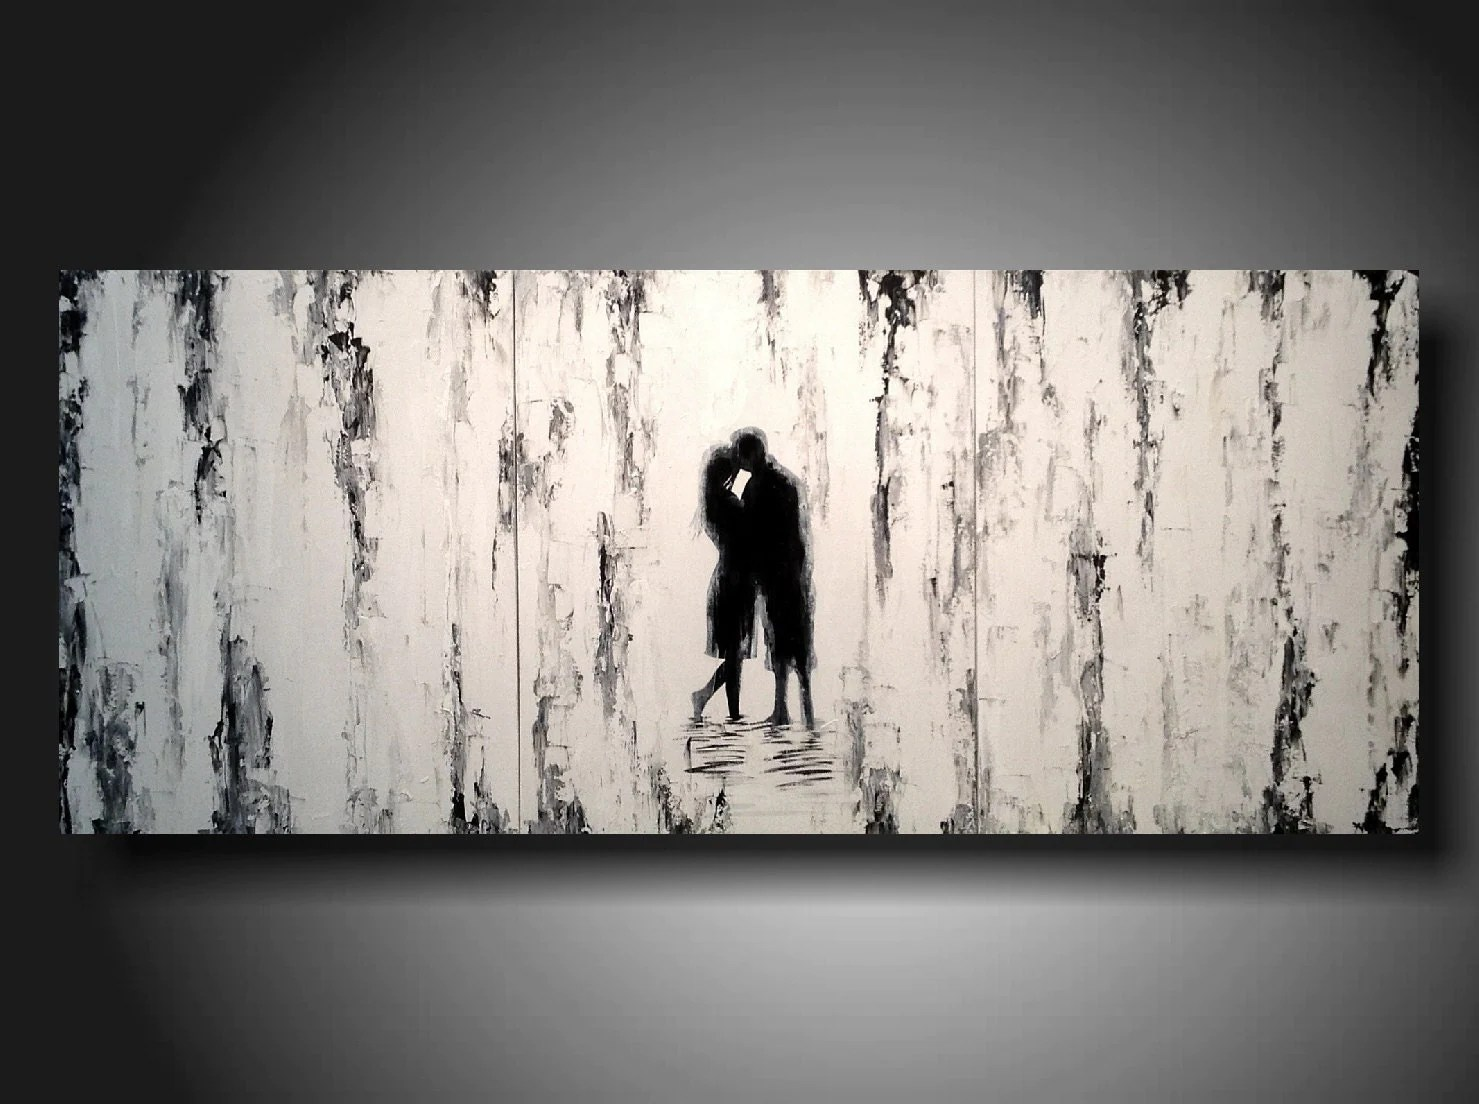 Silhouette Paintings Of People Large Black And White Silhouette Painting White And Black